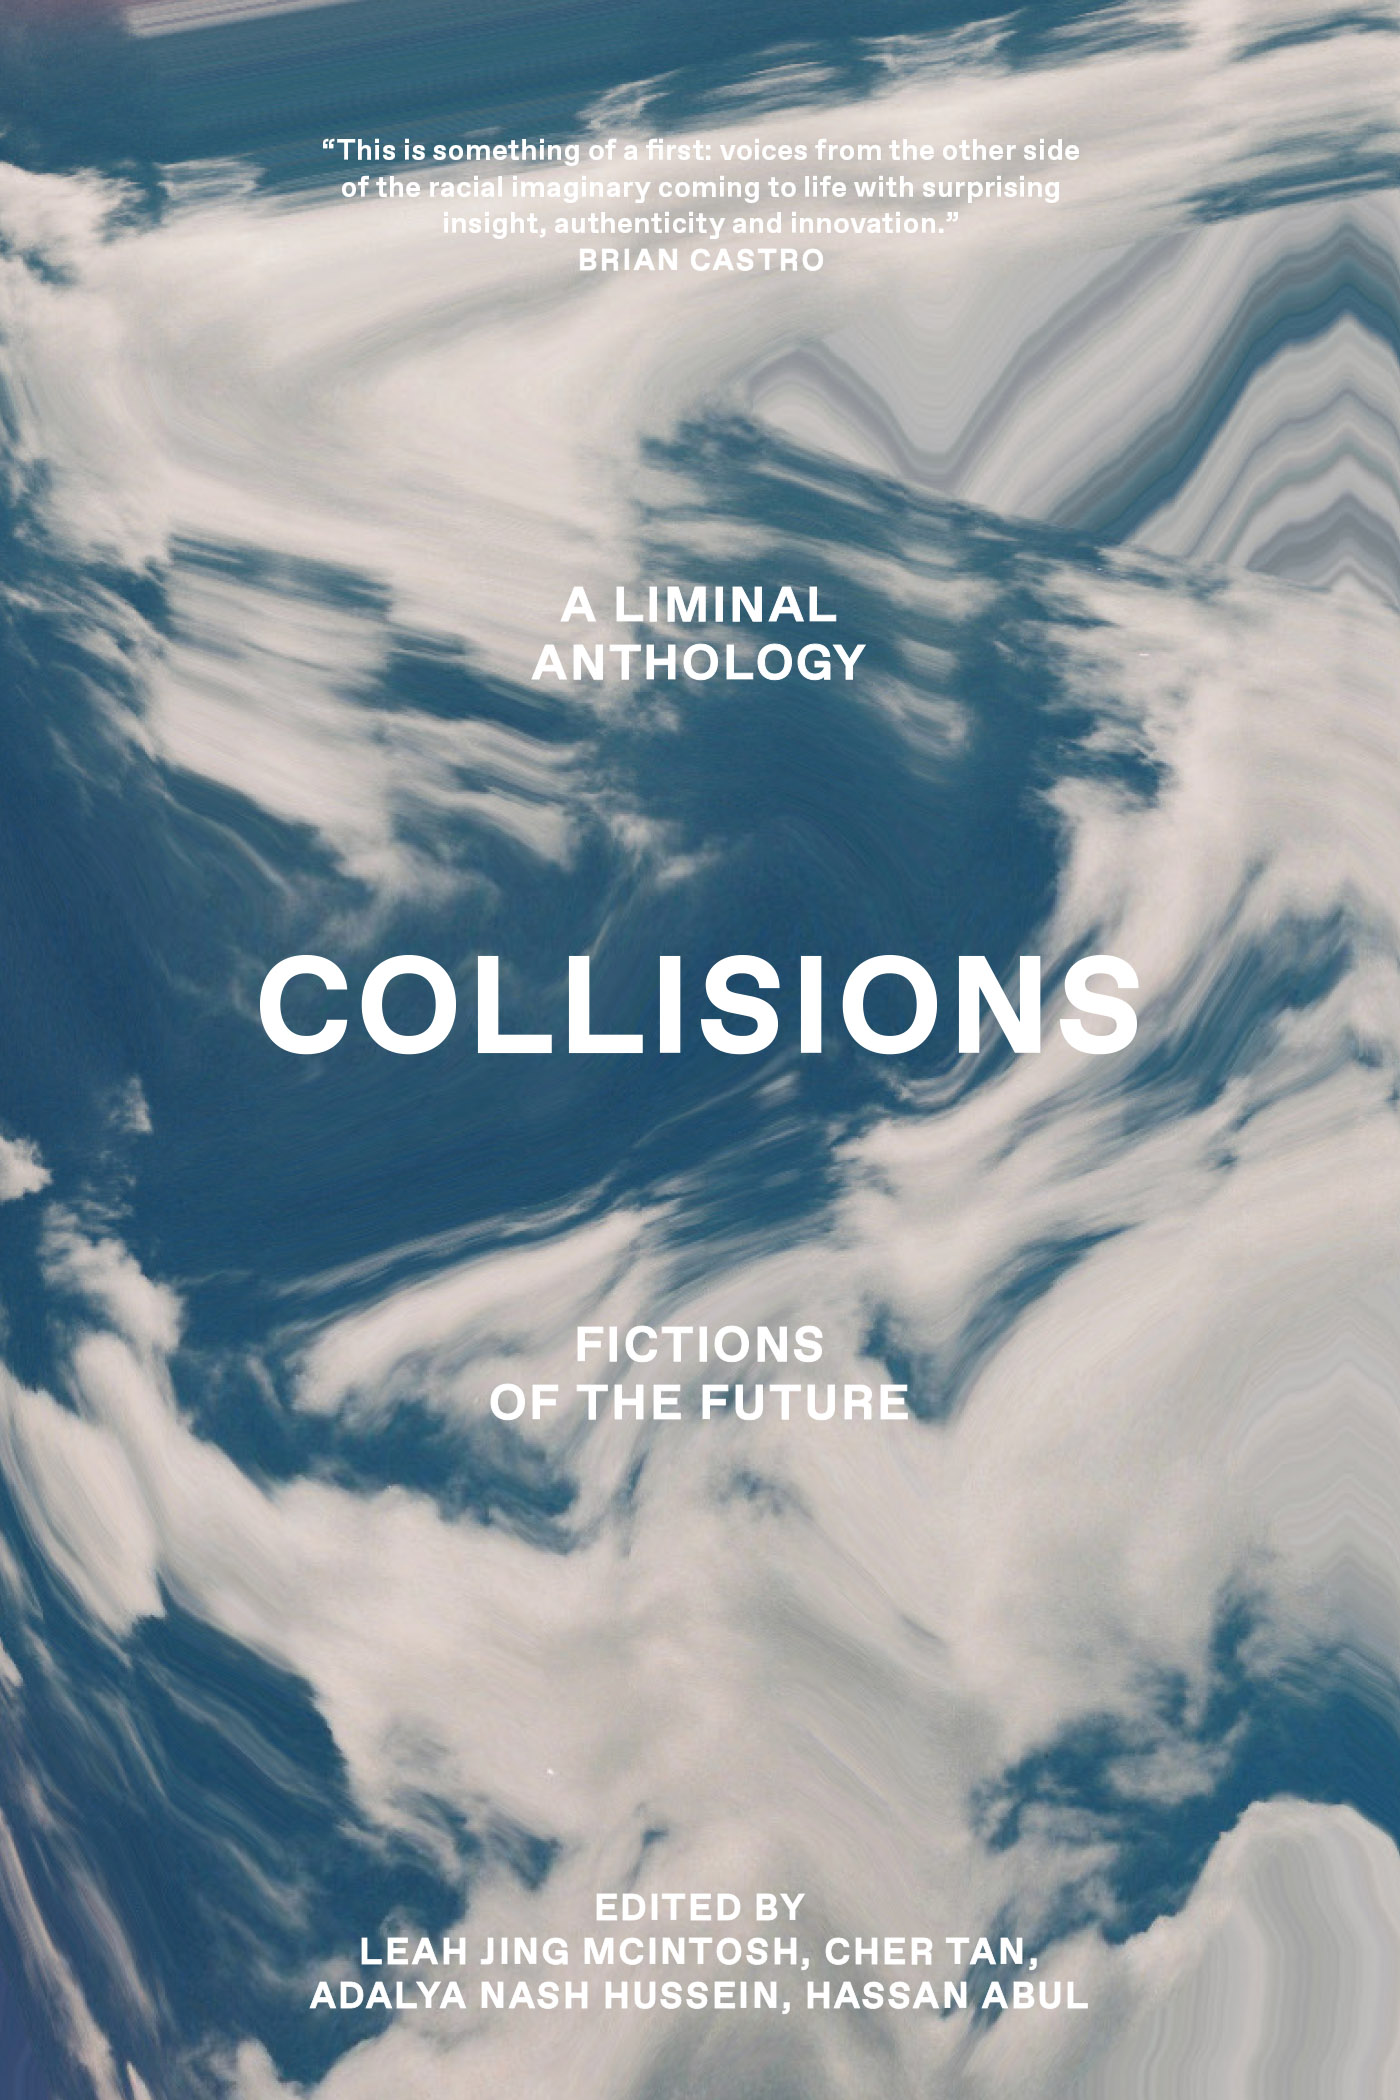 Pantera Press to publish COLLISIONS: A Liminal Anthology in November 2020 event image